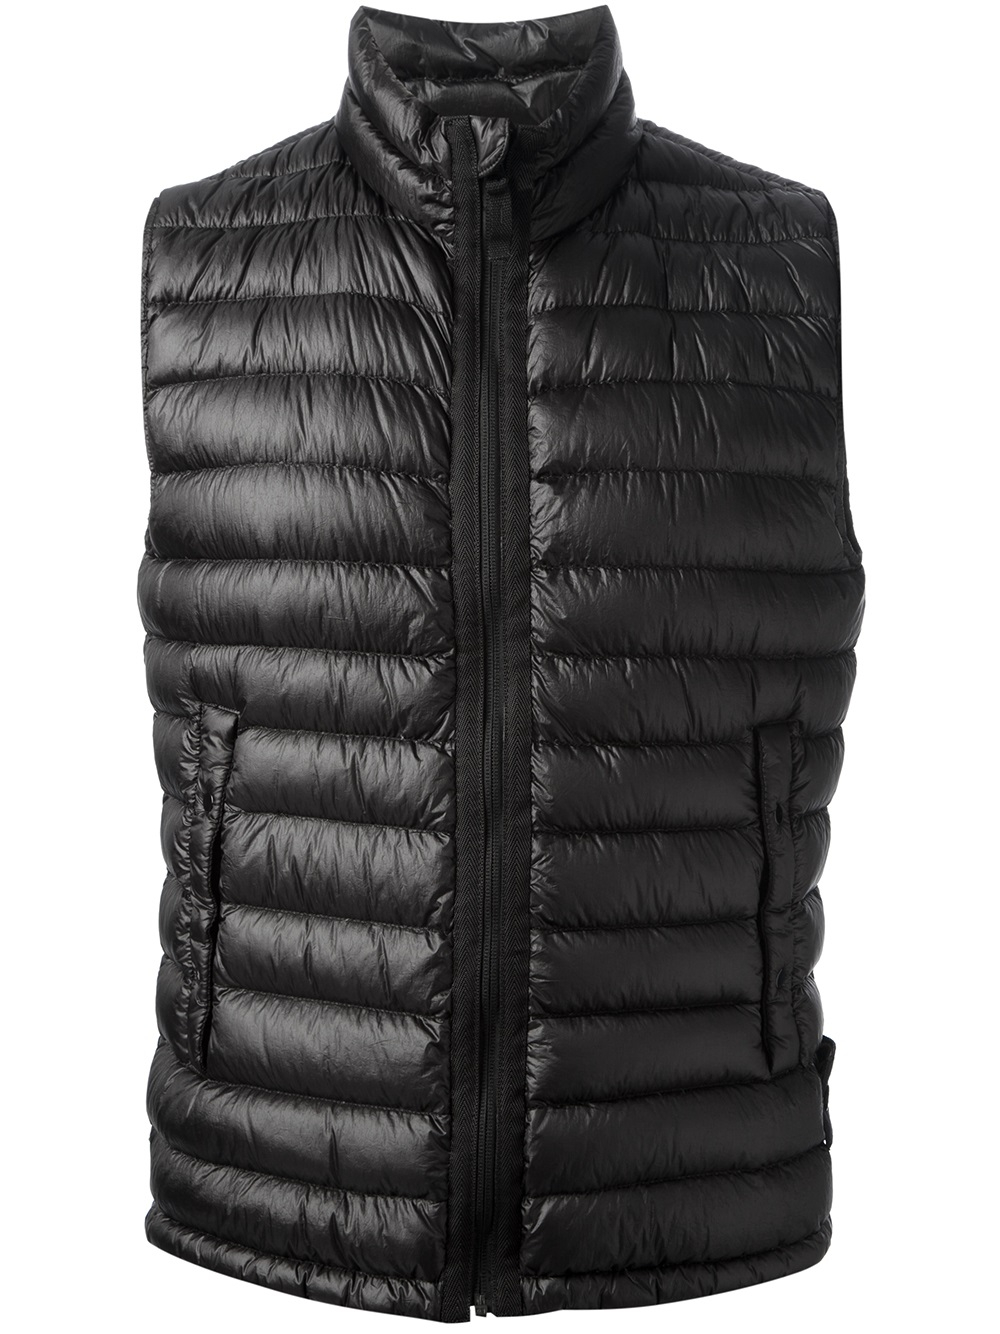 Stone Island Stone Island Padded Gilet In Black For Men Lyst